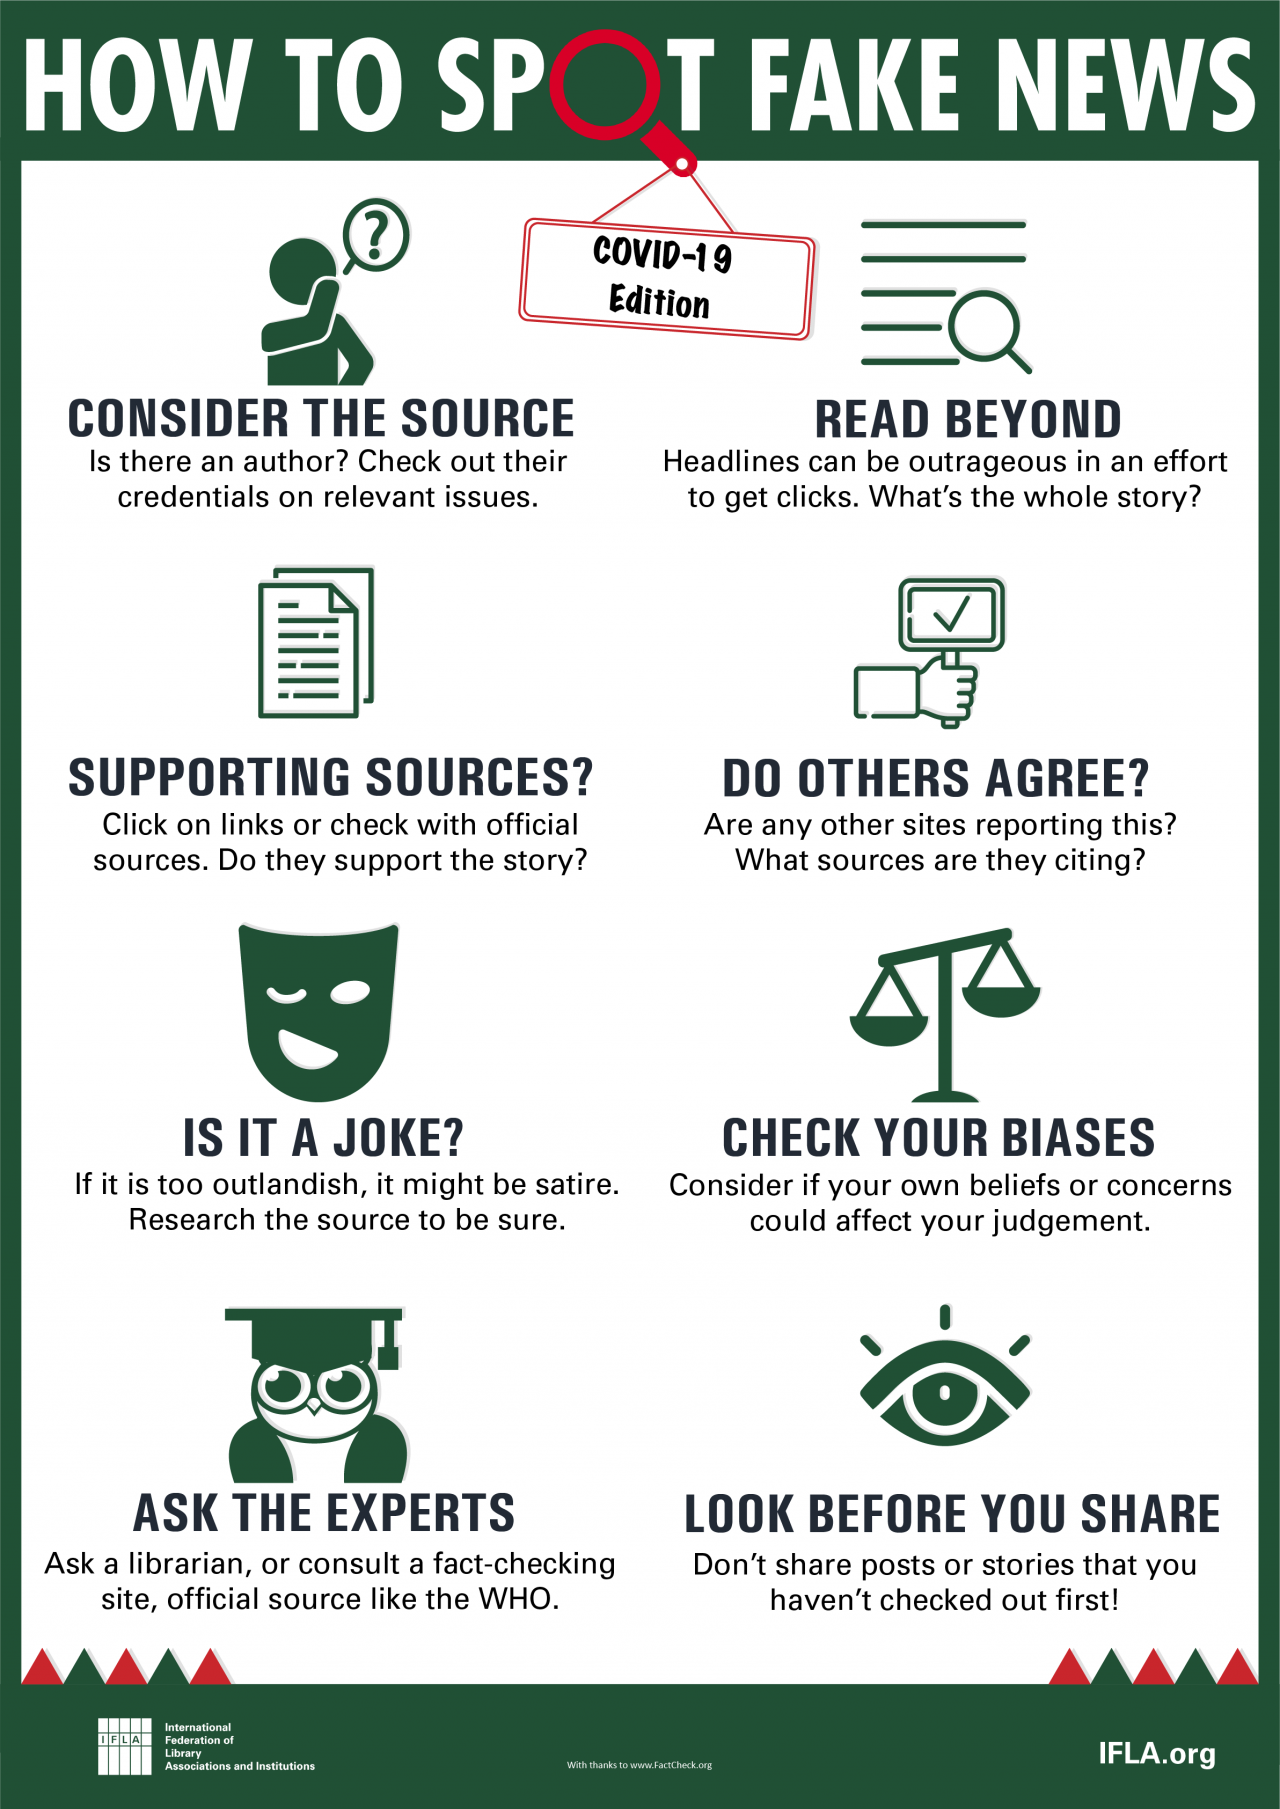 """Infographic: """"How to spot fake news - Covid-19 edition"""". 1. Consider the source: Is there an author? Check out their credentials on relevant issues. 2. Read beyond: Headlines can be outrageous in an effort to get clicks. What's the whole story? 3. Supporting sources?: Click on links or check with official sources. Do they support the story? 4. Do others agree?: Are any other sites reporting this? What sources are they citing? 5. Is it a joke?: If it is too outlandish, it might be satire. Research the source to be sure. 6. Check your biases: Consider if your own beliefs or concerns could affect your judgement. 7. Ask the experts: Ask a librarian, or consult a fact-checking site, official source like the WHO. 8. Look before you share: Don't share posts or stories that you haven't checked out first!"""